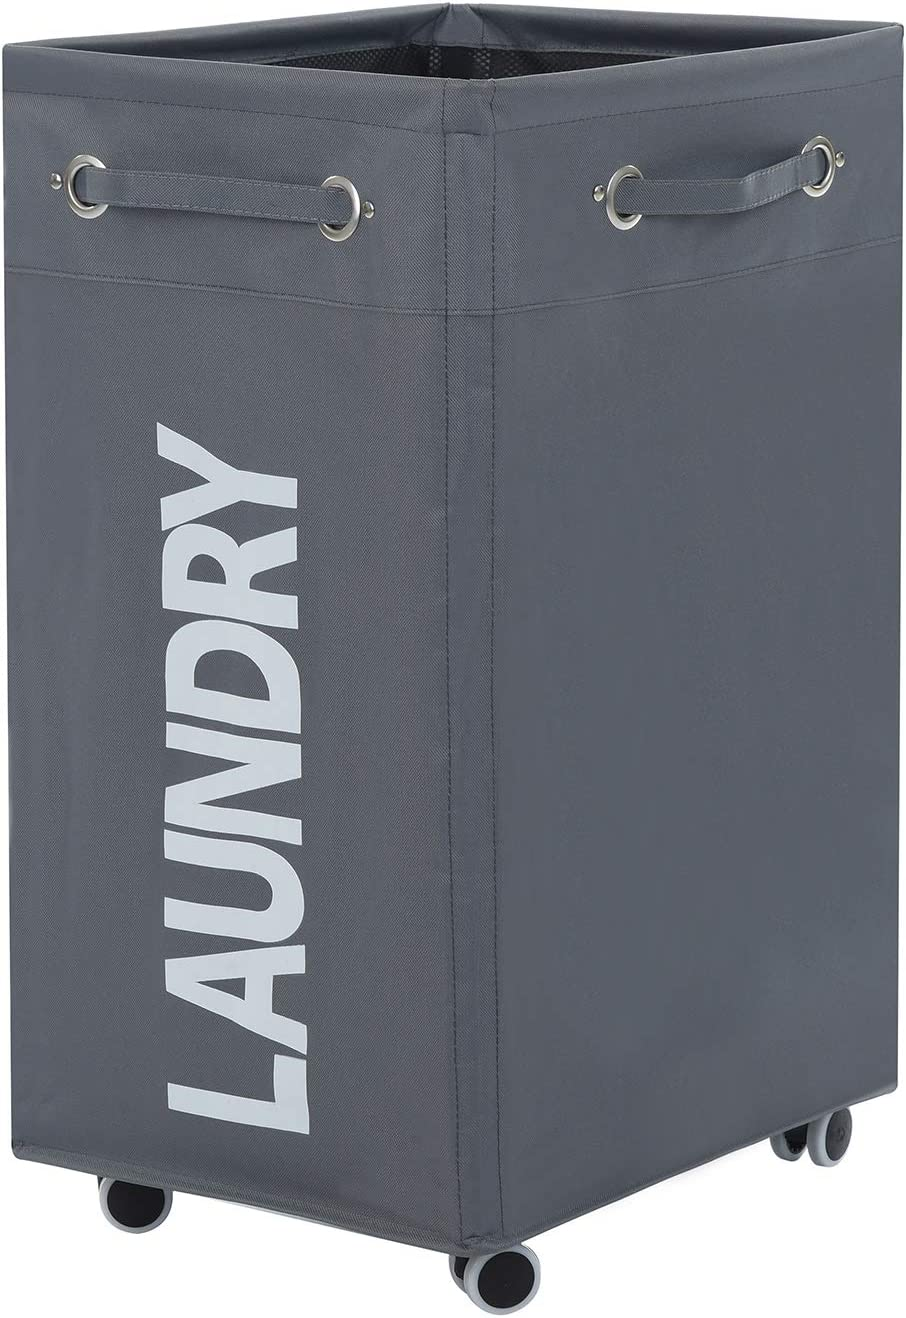 Haundry 86L X-Large Collapsible Laundry Great interest Wate with Hamper Wheels Max 48% OFF